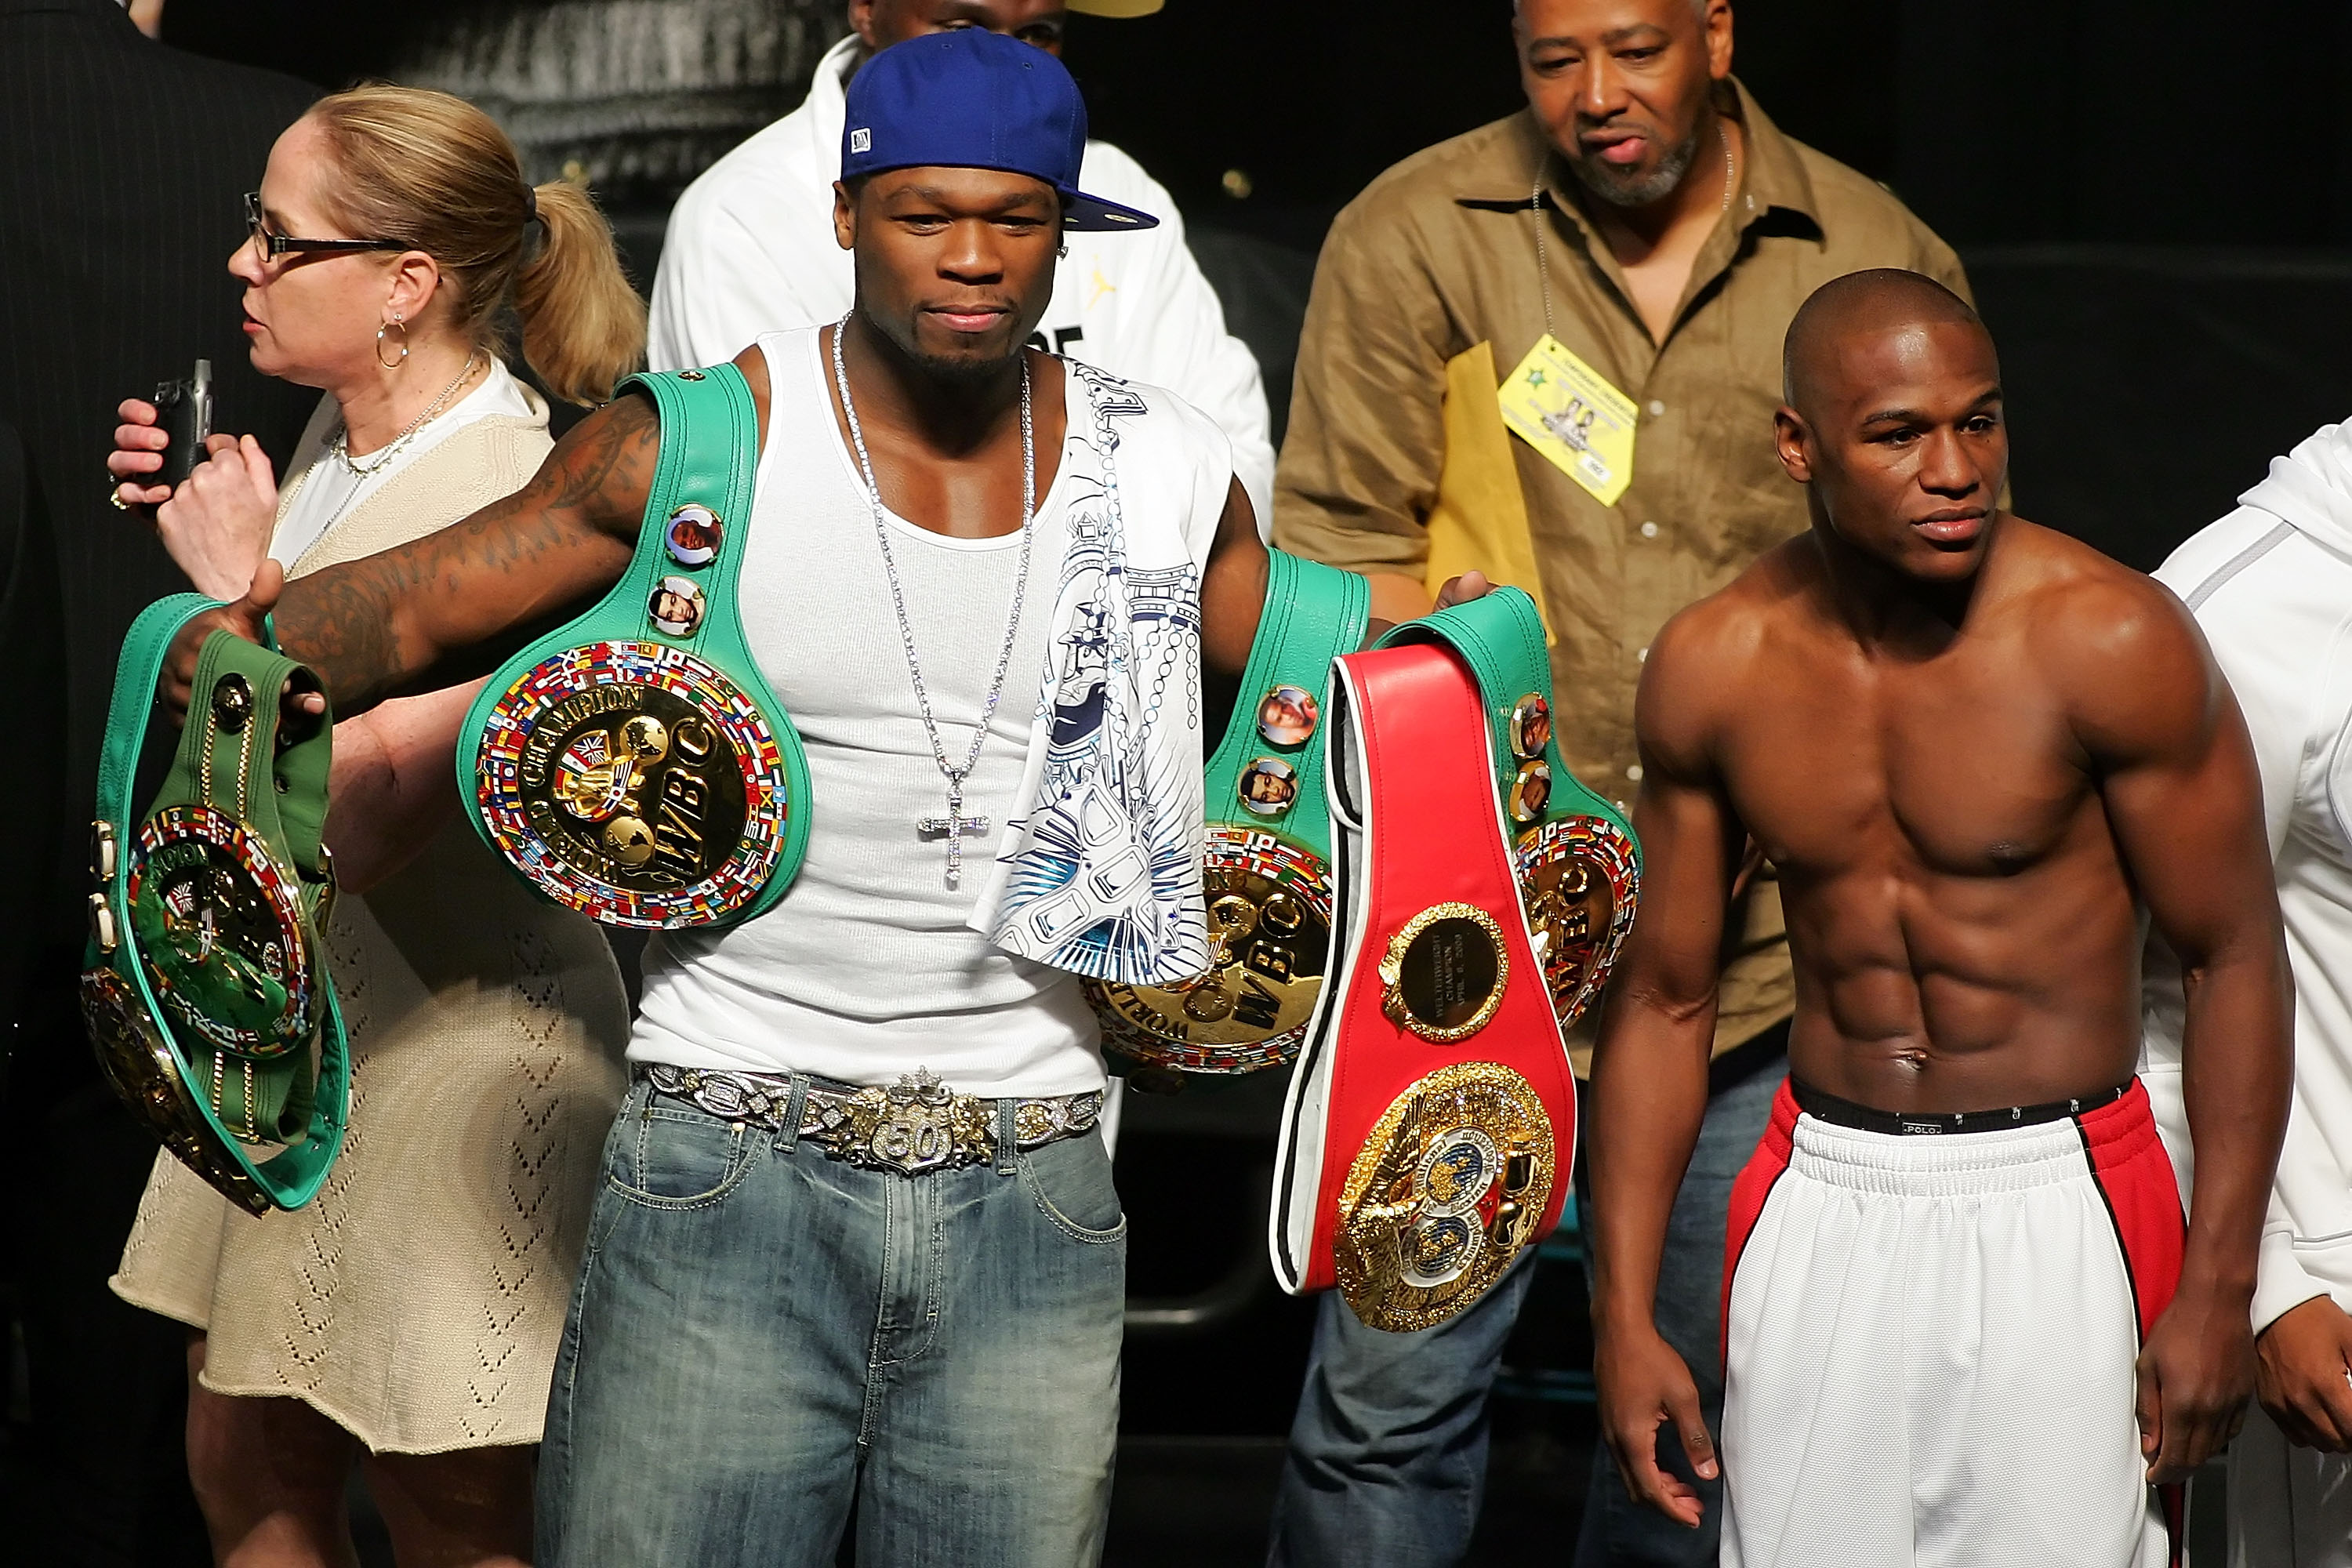 50 Cent gets absolutely destroyed by Floyd Mayweather in